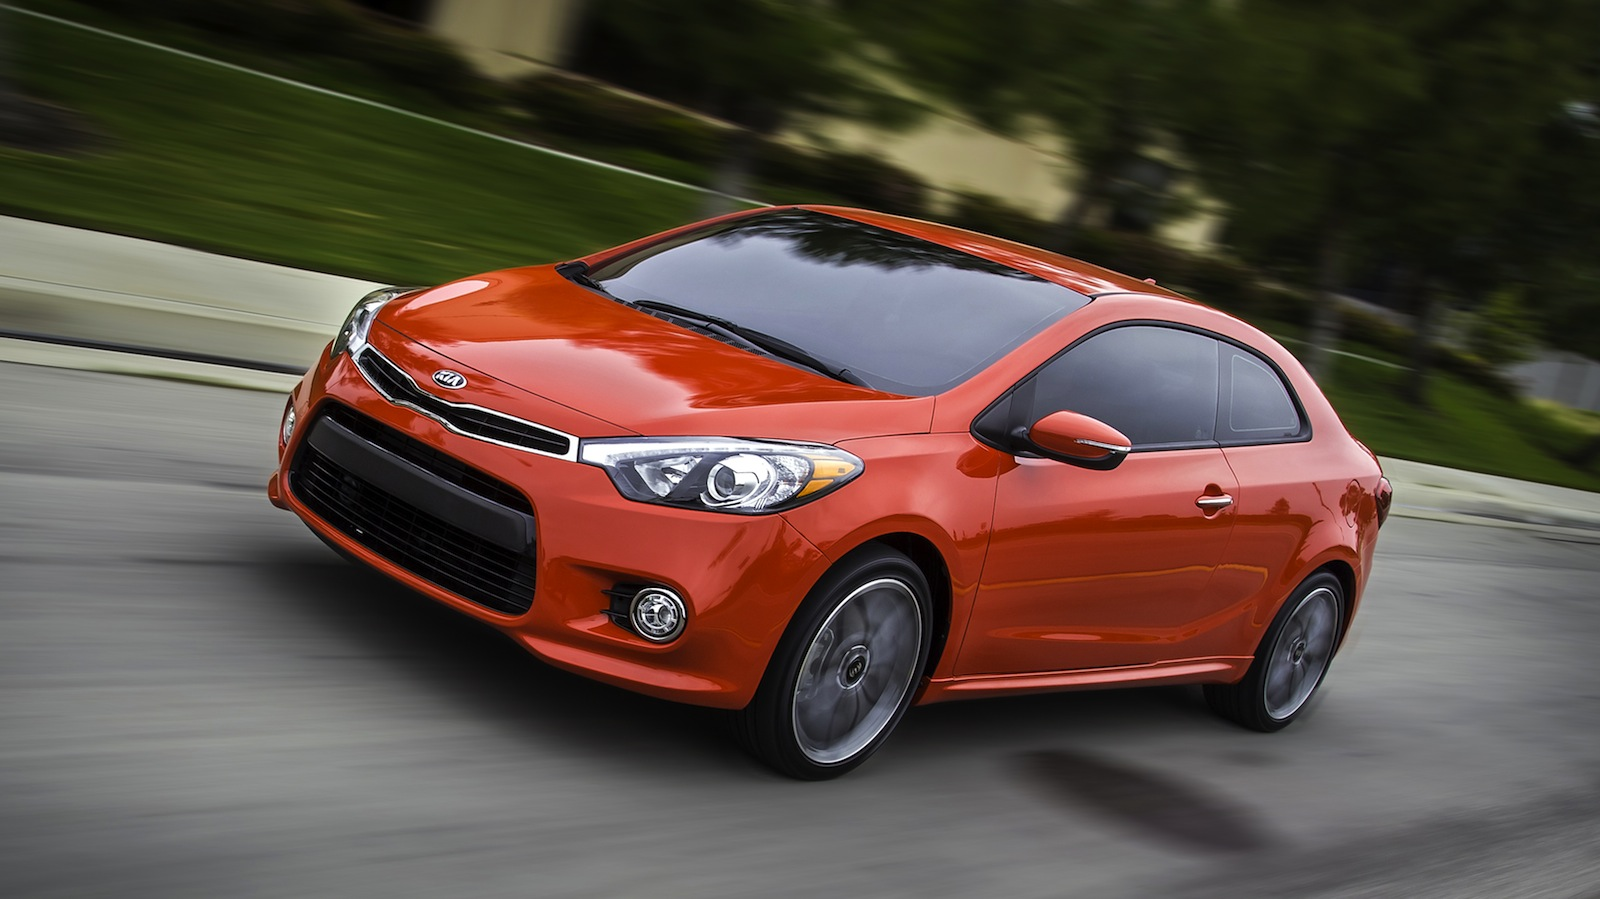 Kia Cerato Koup Turbo coming in October - photos | CarAdvice